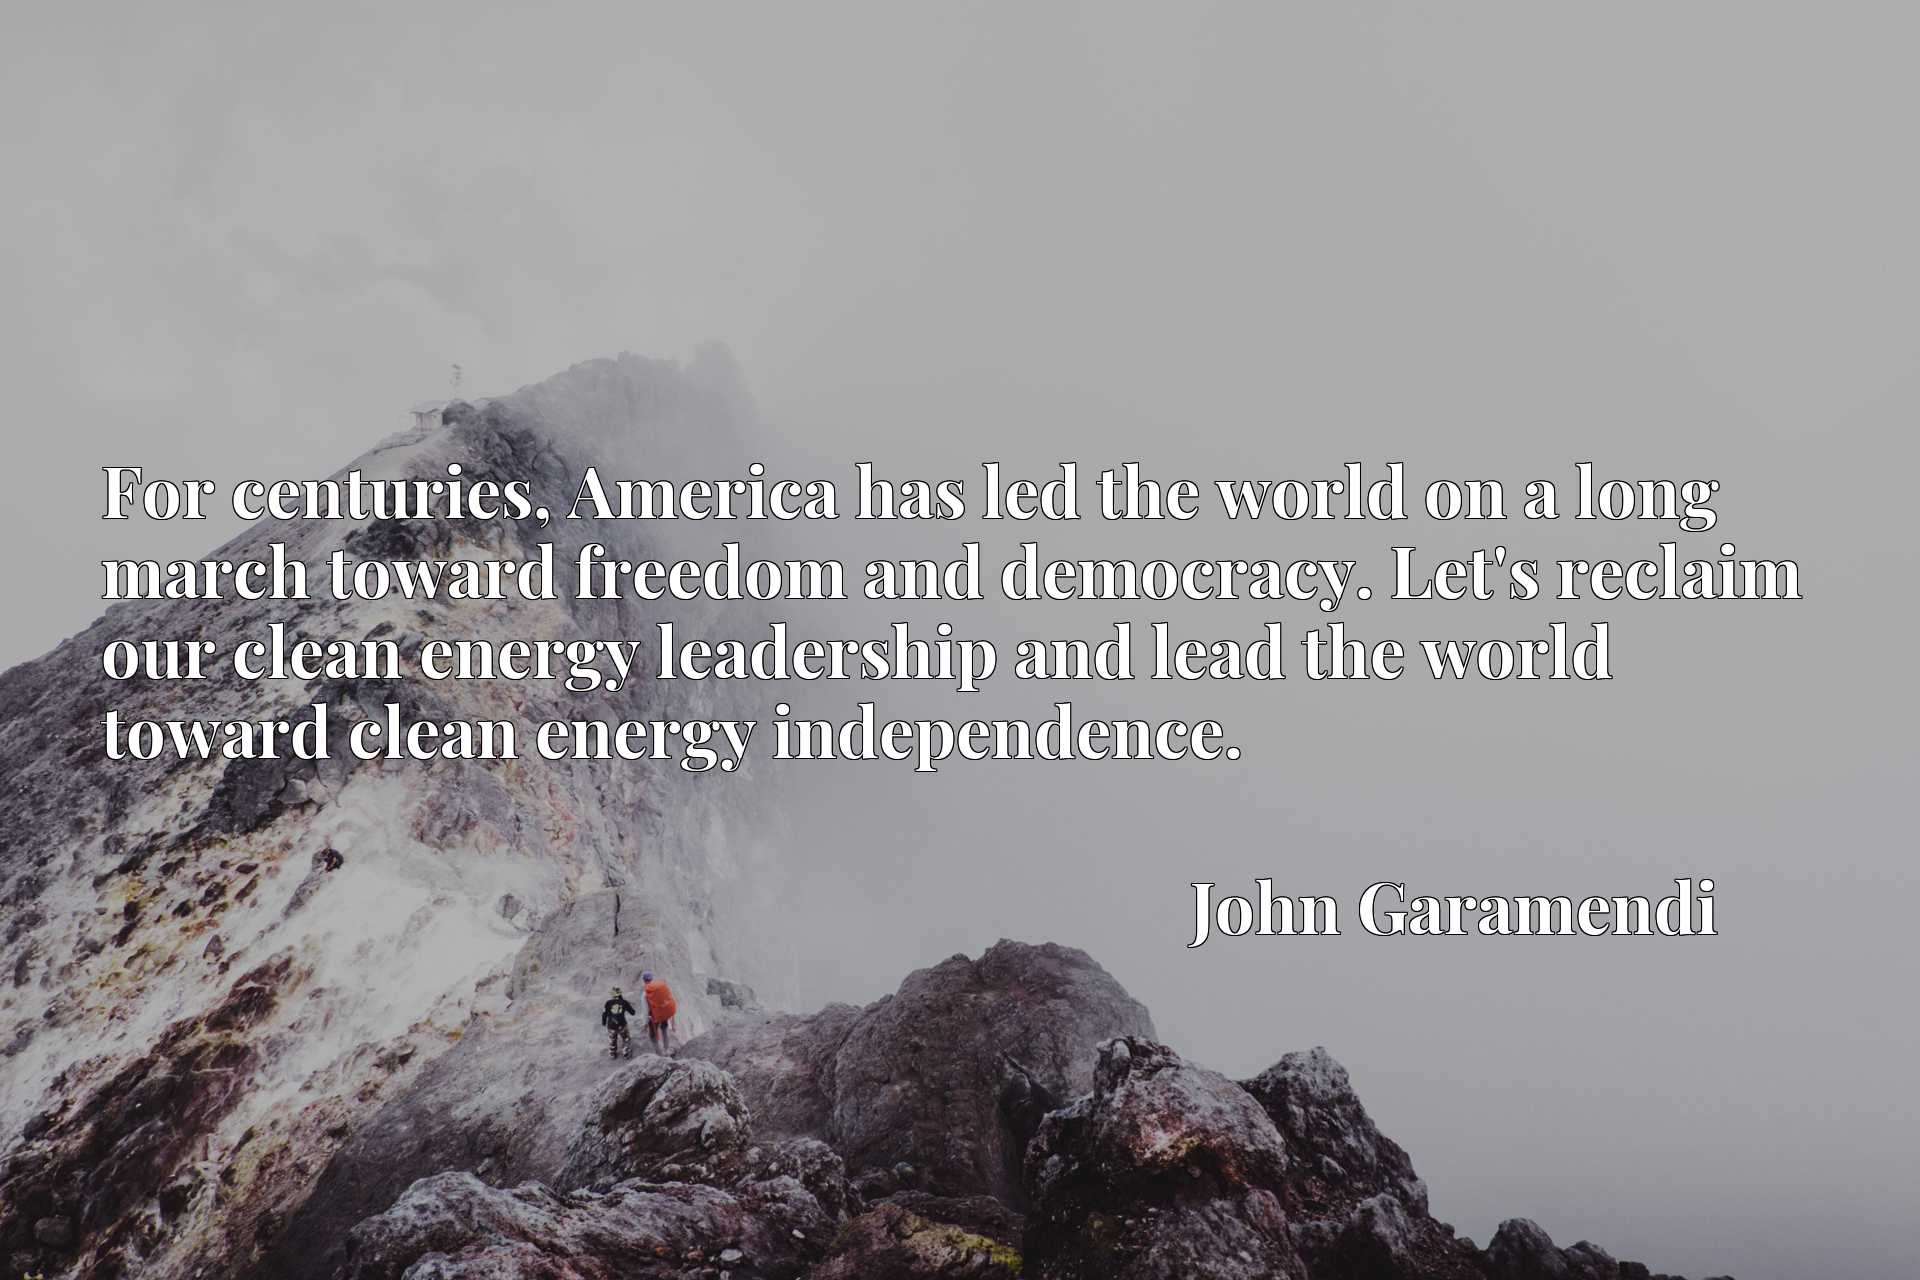 For centuries, America has led the world on a long march toward freedom and democracy. Let's reclaim our clean energy leadership and lead the world toward clean energy independence.